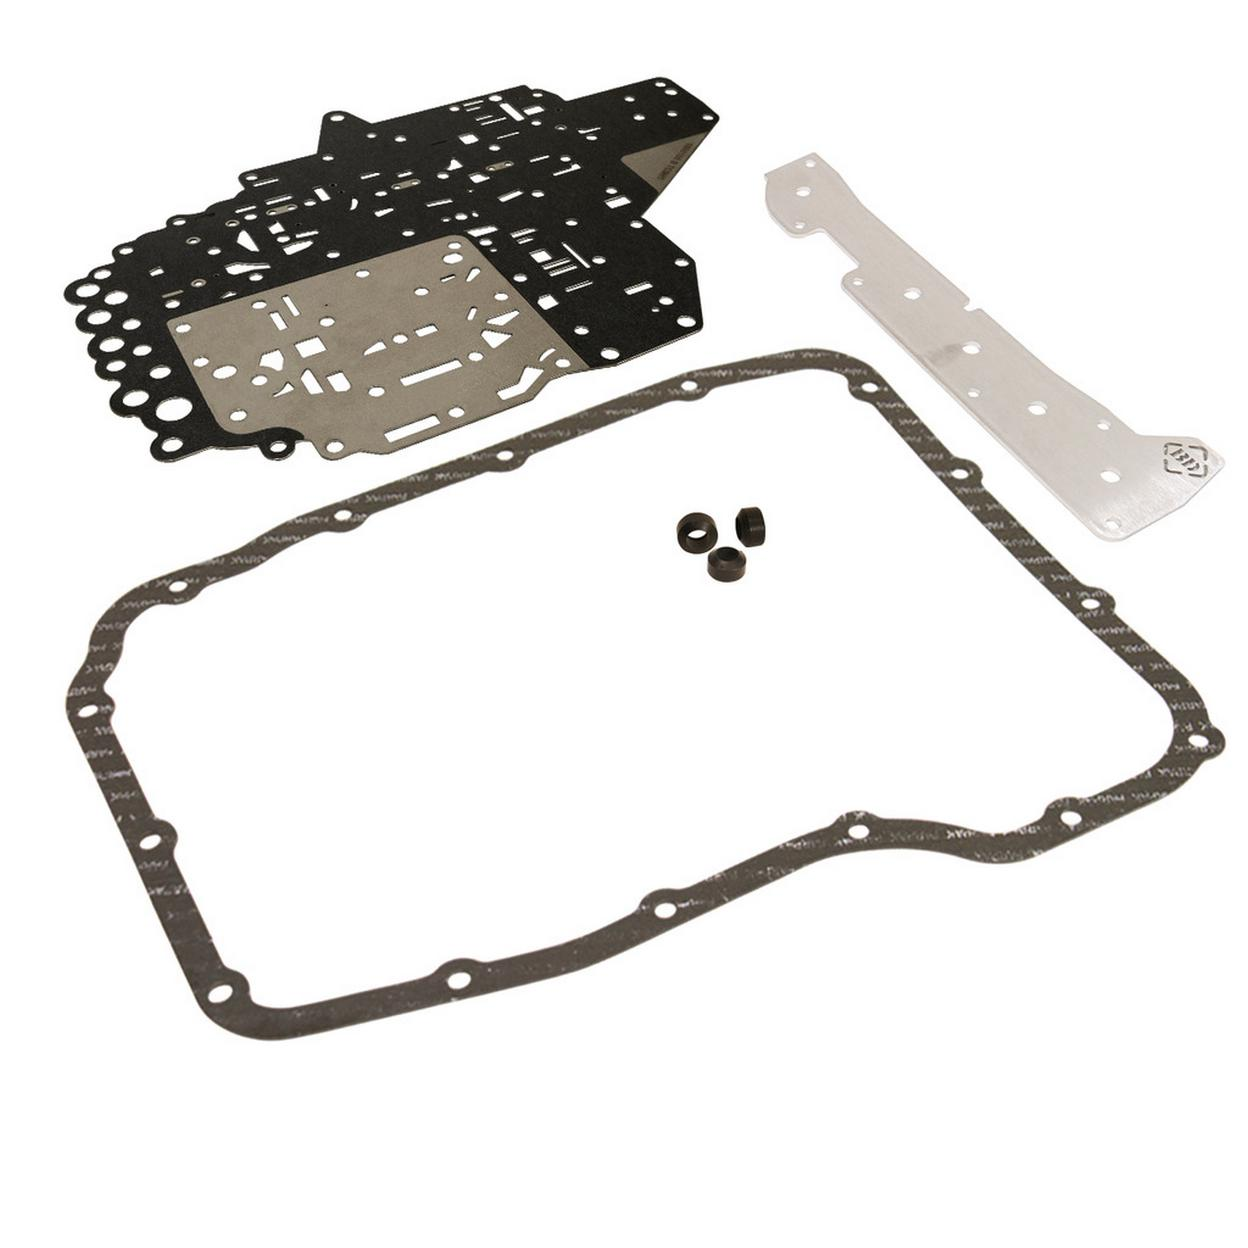 BD Protect68 Gasket Plate Kit Dodge 6.7L 2007.5-2018 68RFE Transmission